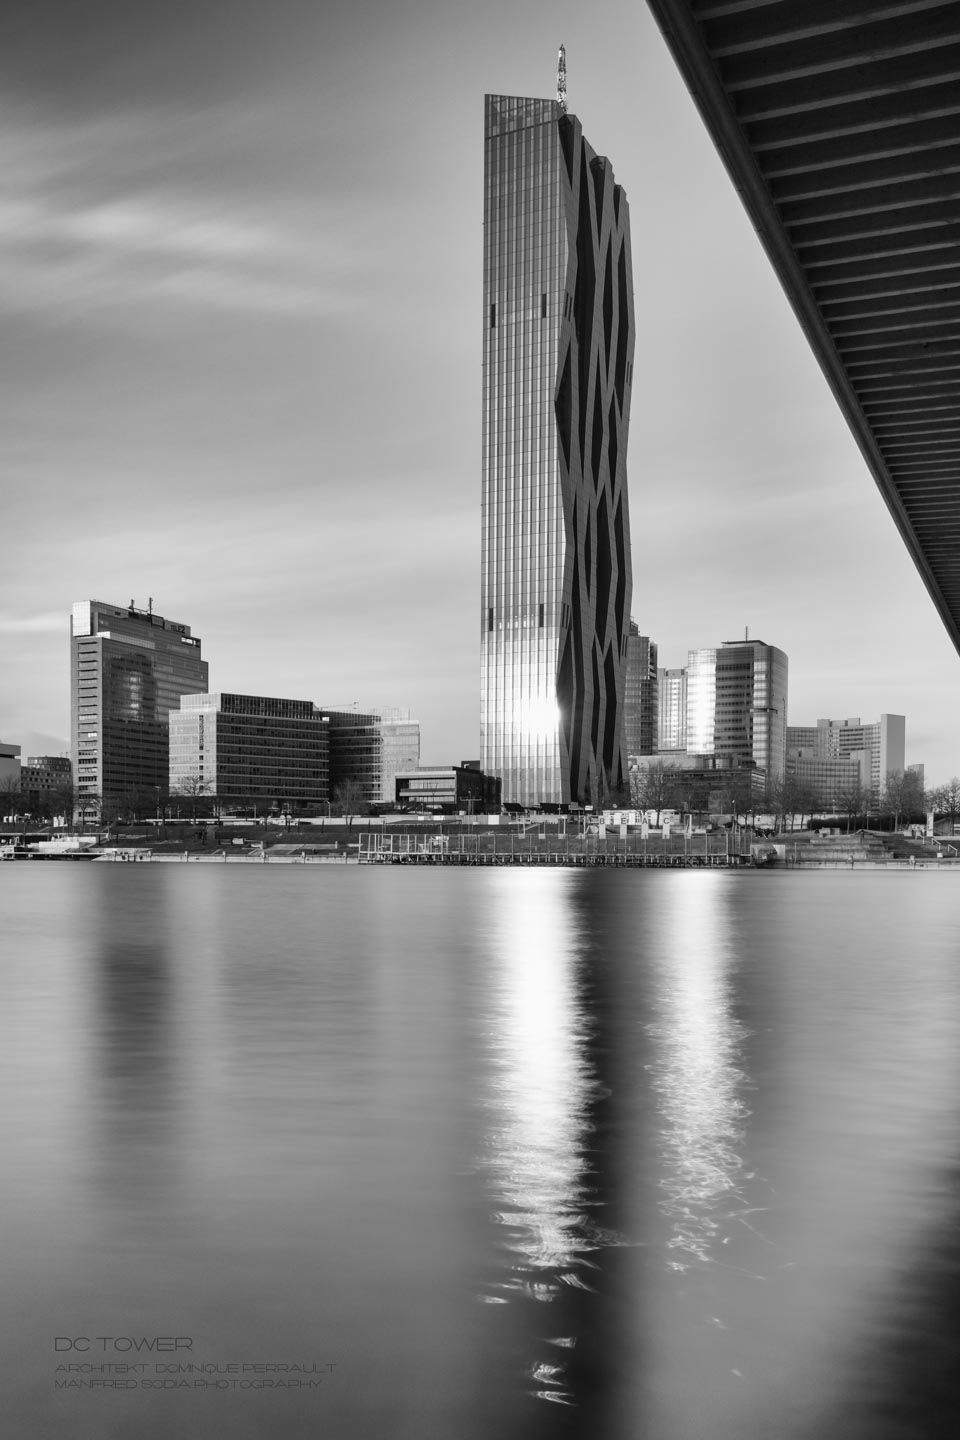 DC Tower, Architekt Dominique Perrault, Bild von Manfred Sodia - MANFREDSODIAphotography